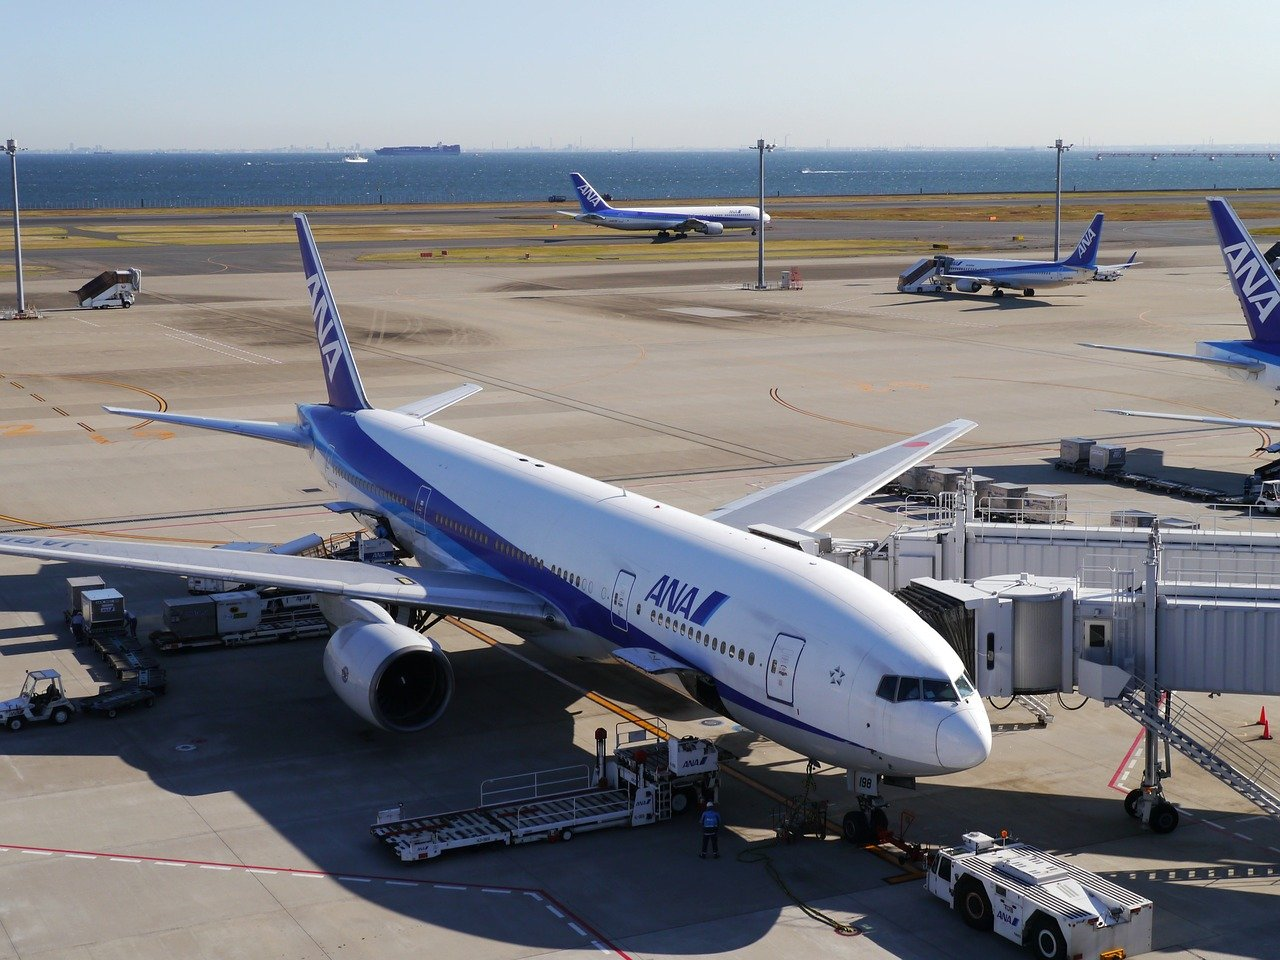 ANA Boeing 787 jet diverts to Russia after pilot incapacitation